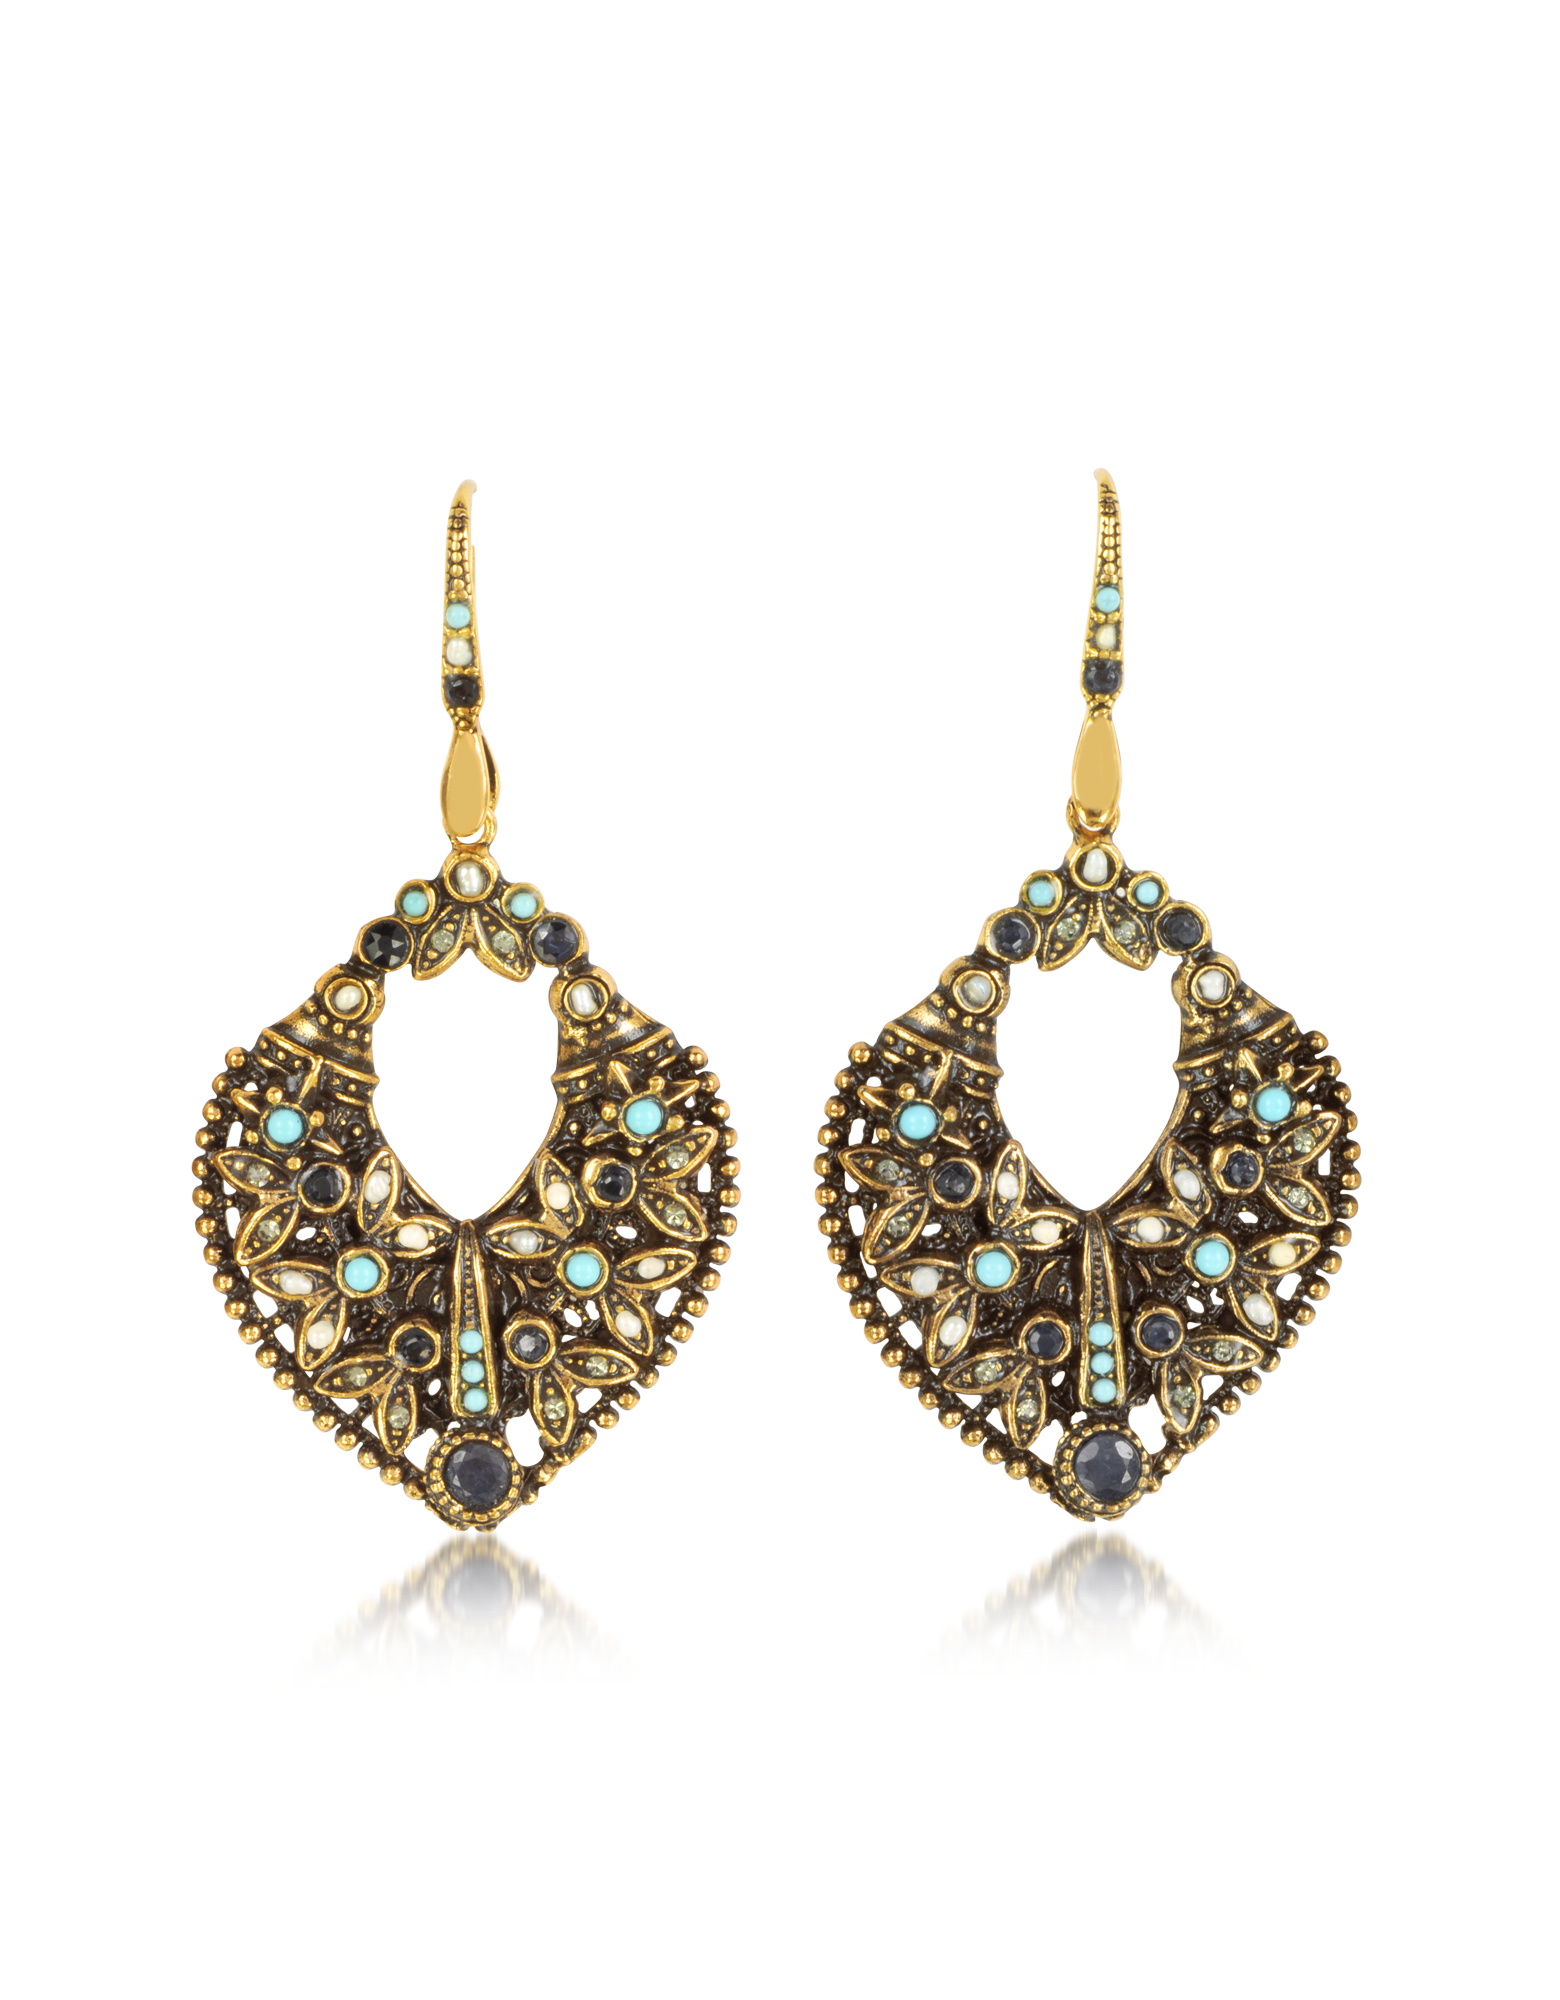 Image of Arabesque Earrings w/Crystals